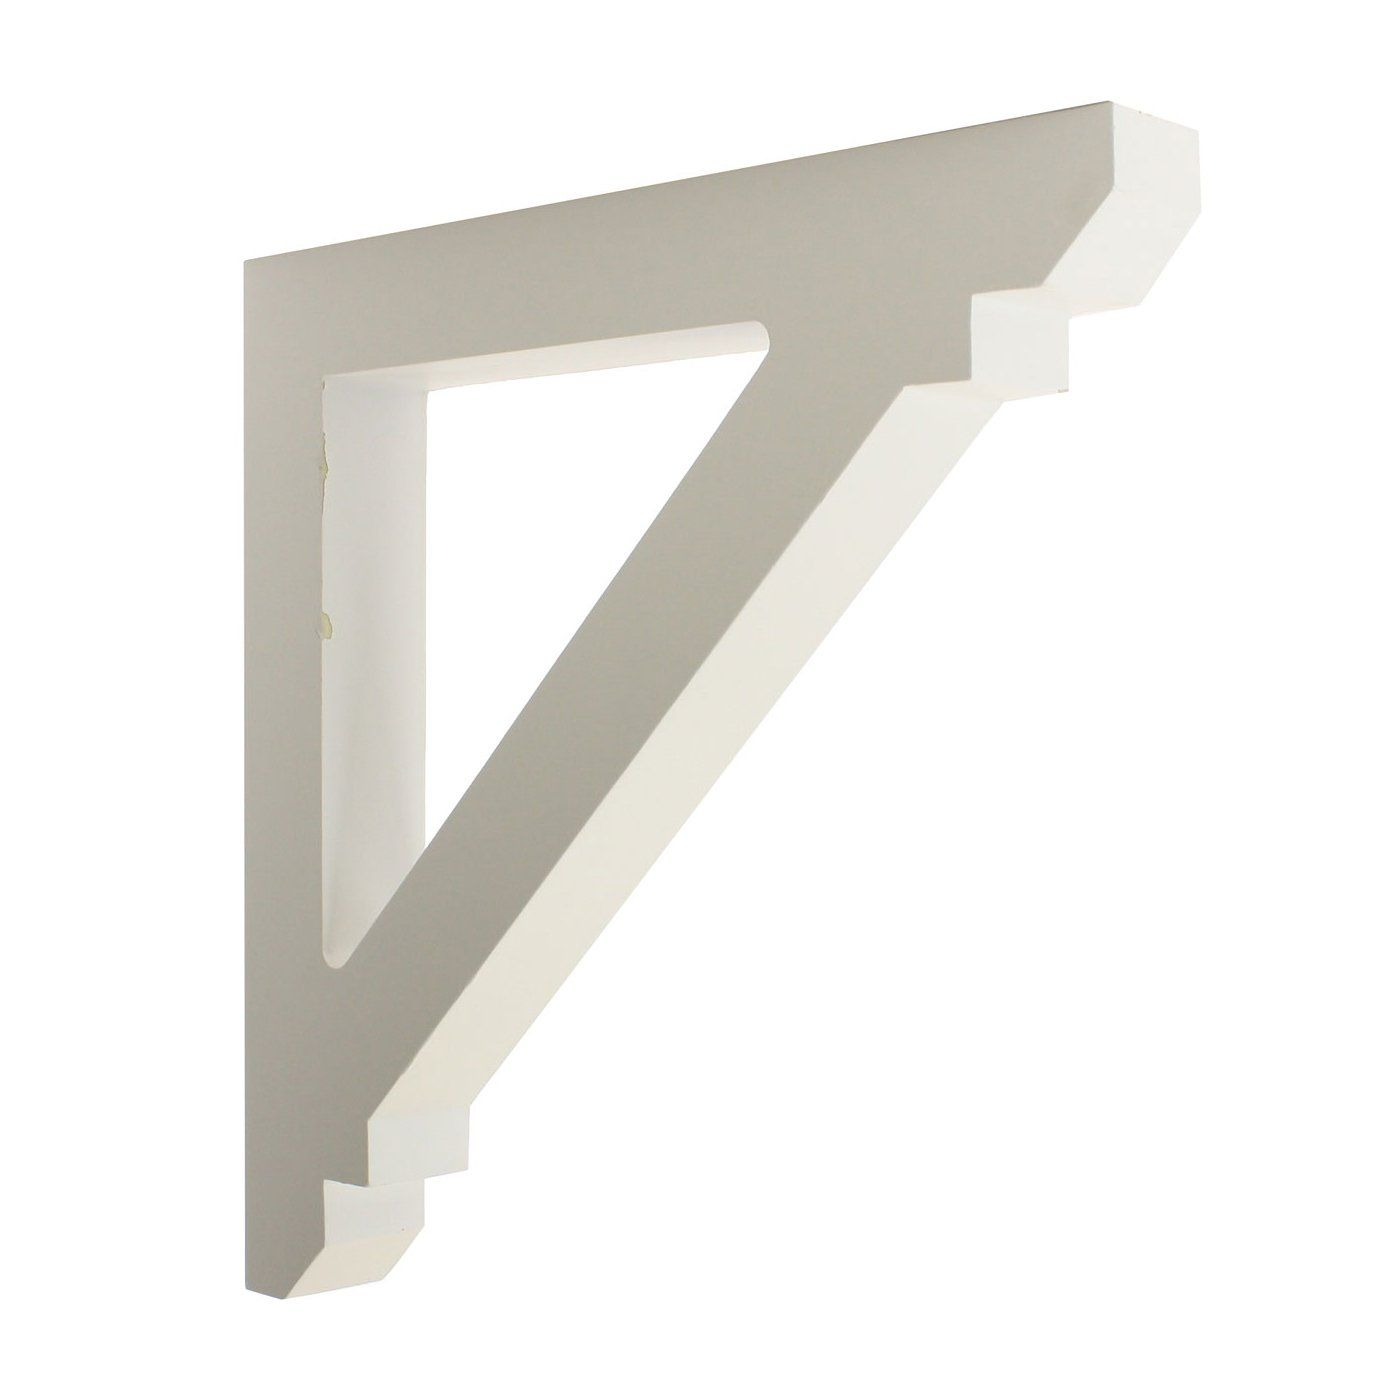 Open Kitchen Shelves With Brackets: One Like This For Kitchen Island Counter Supports?